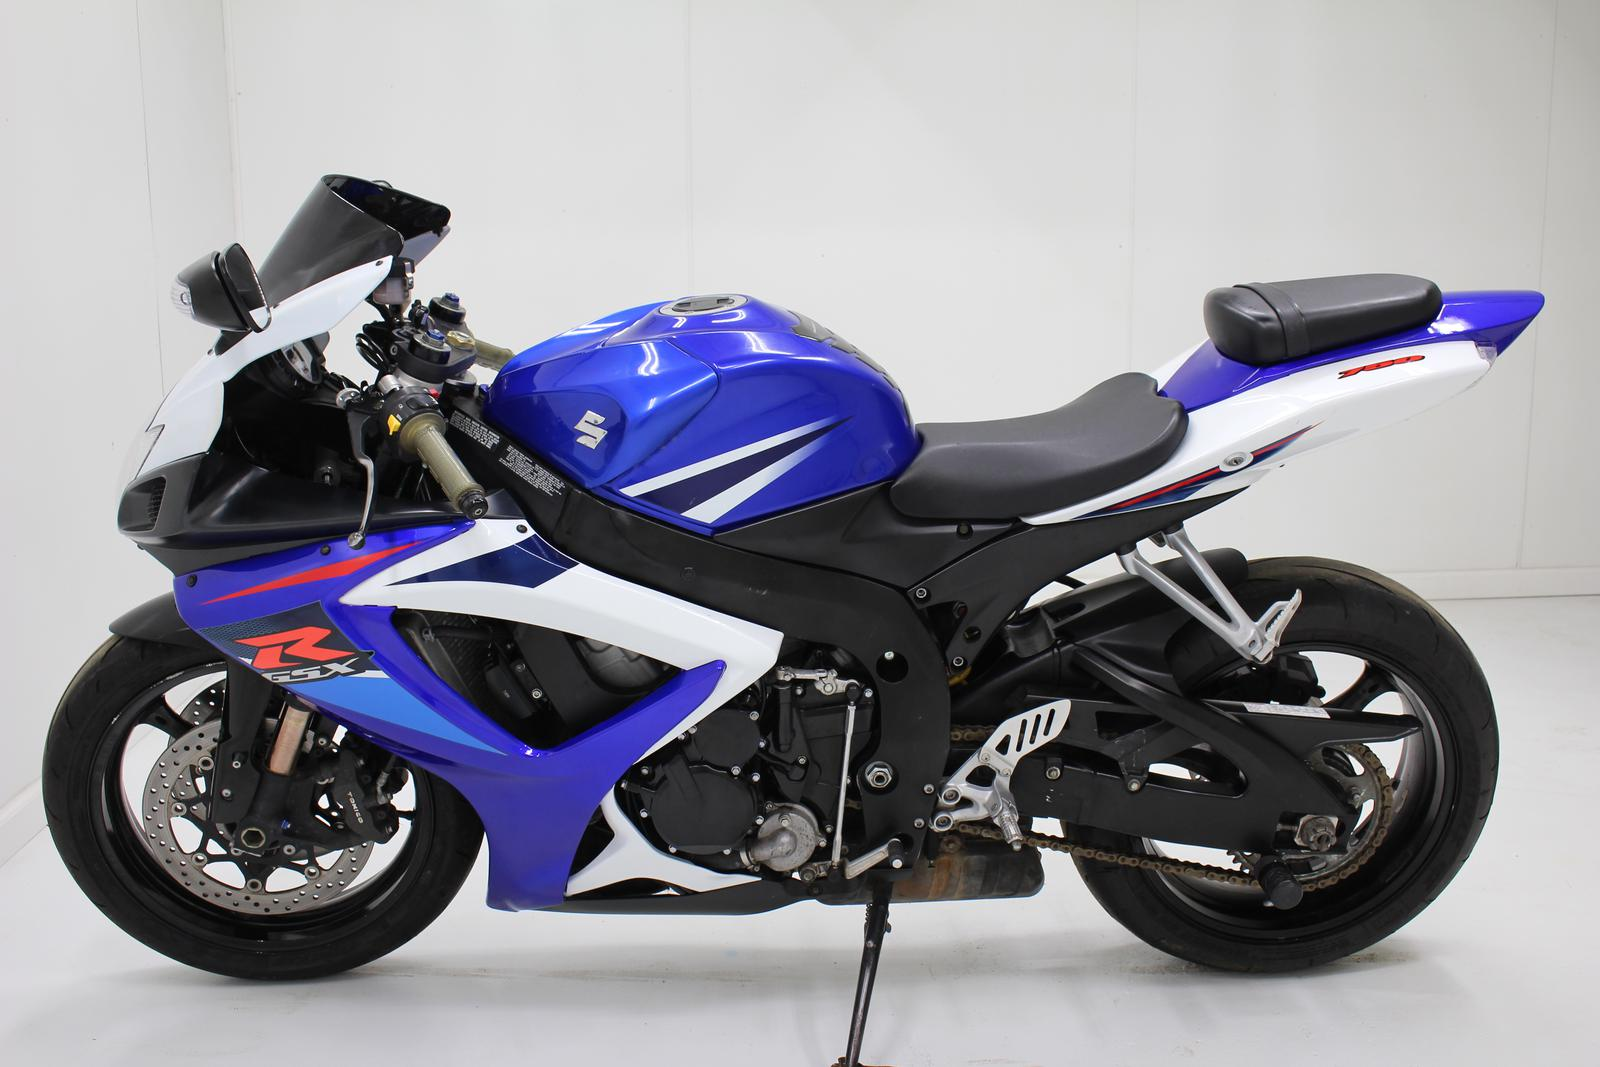 2007 Suzuki Gsx R750 For Sale In Paducah Ky Chase Motorsports Inc Timing Belt 07 Gsxr Img 0230